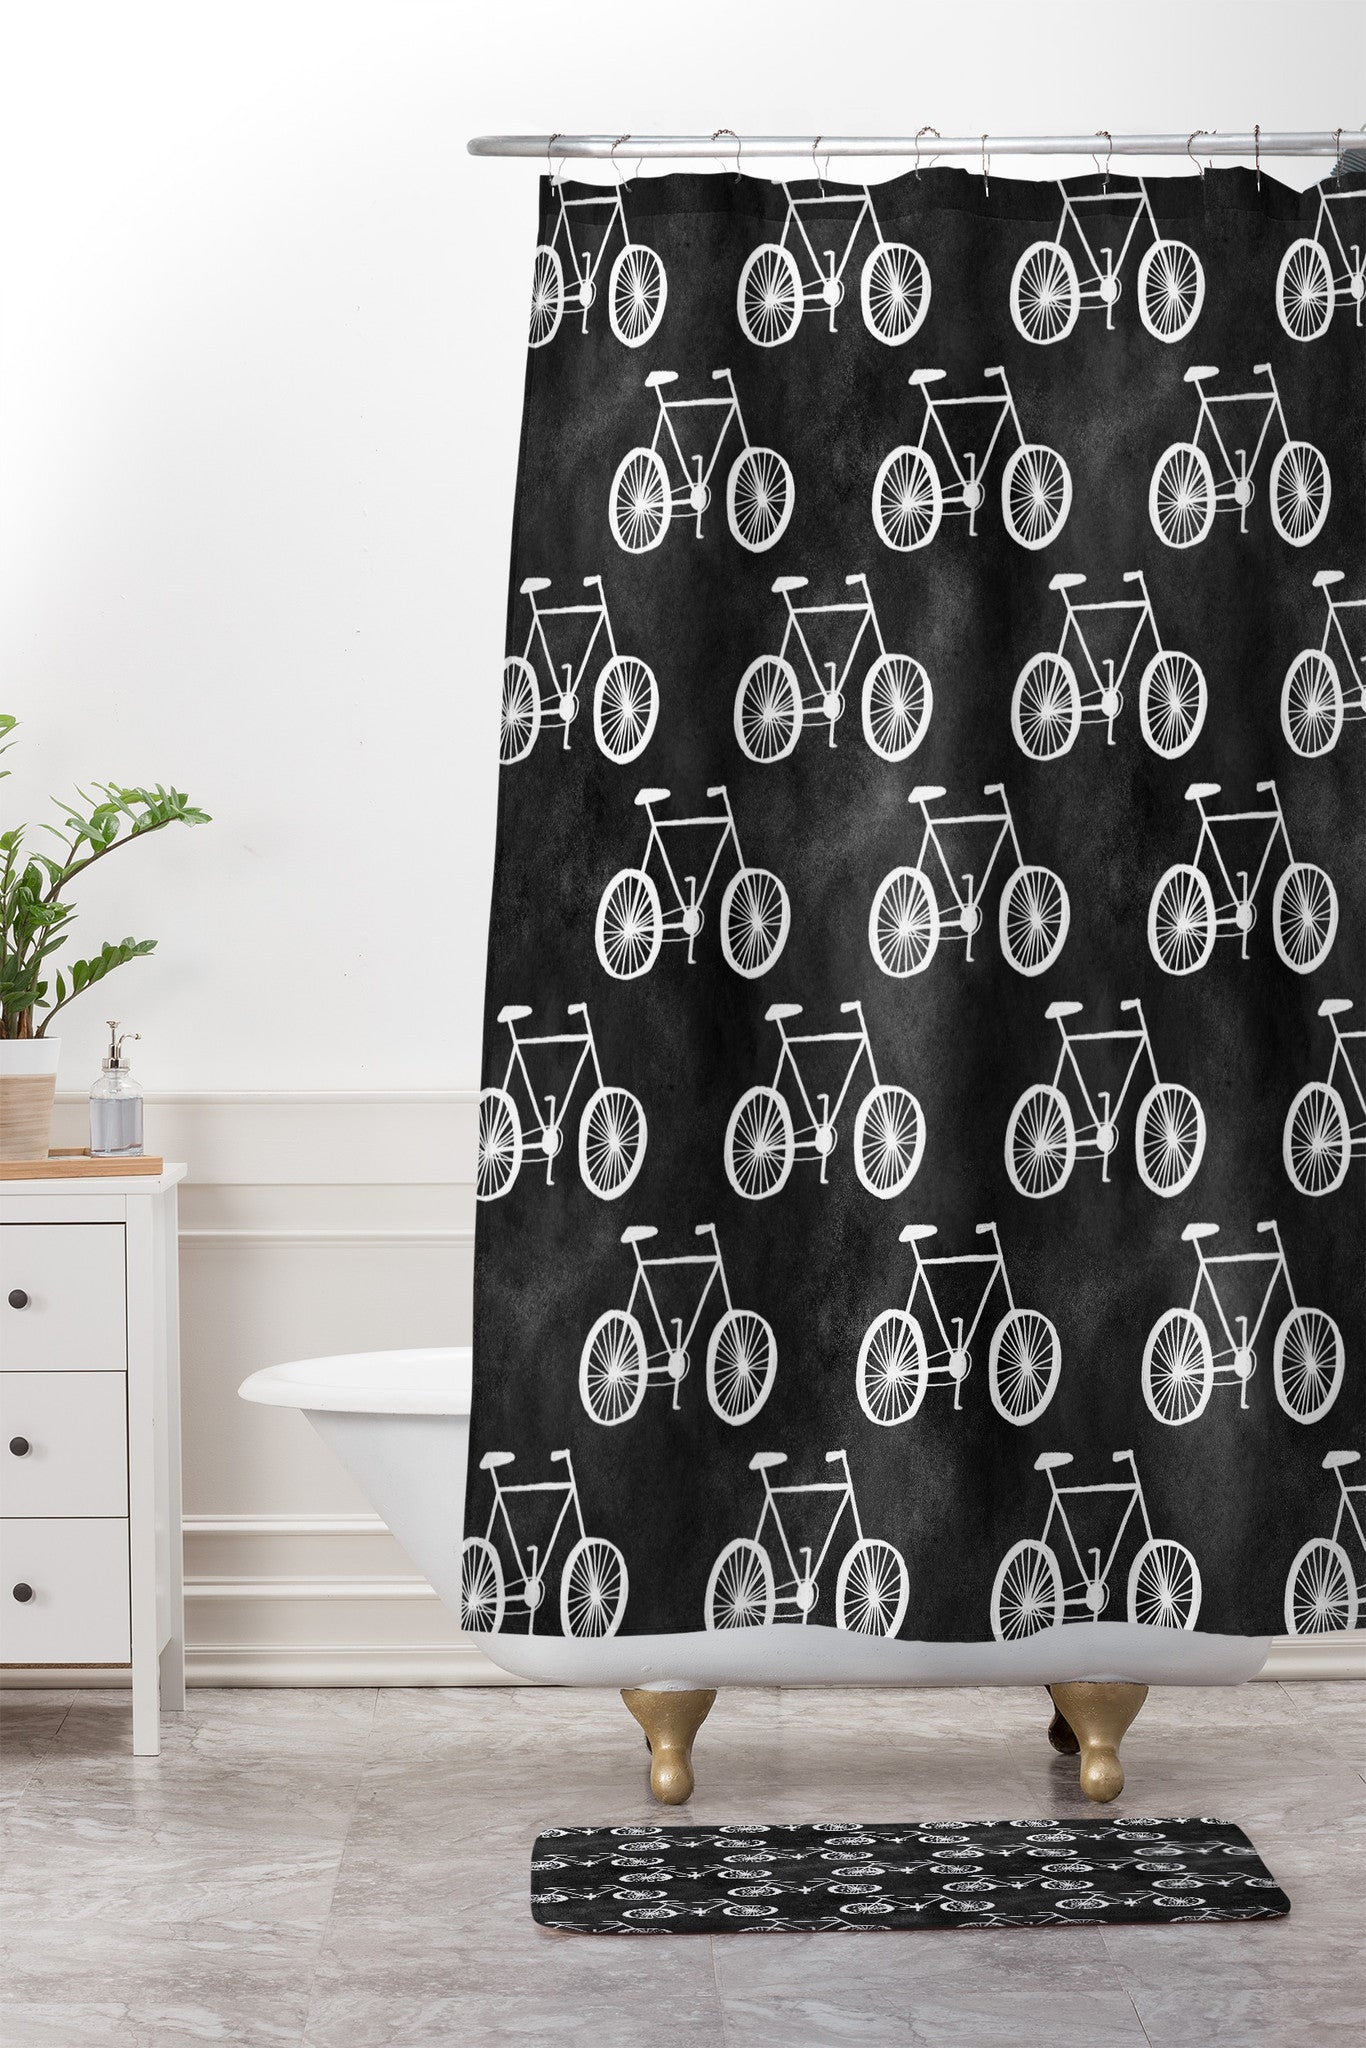 Leah Flores Bicycle Shower Curtain And Mat